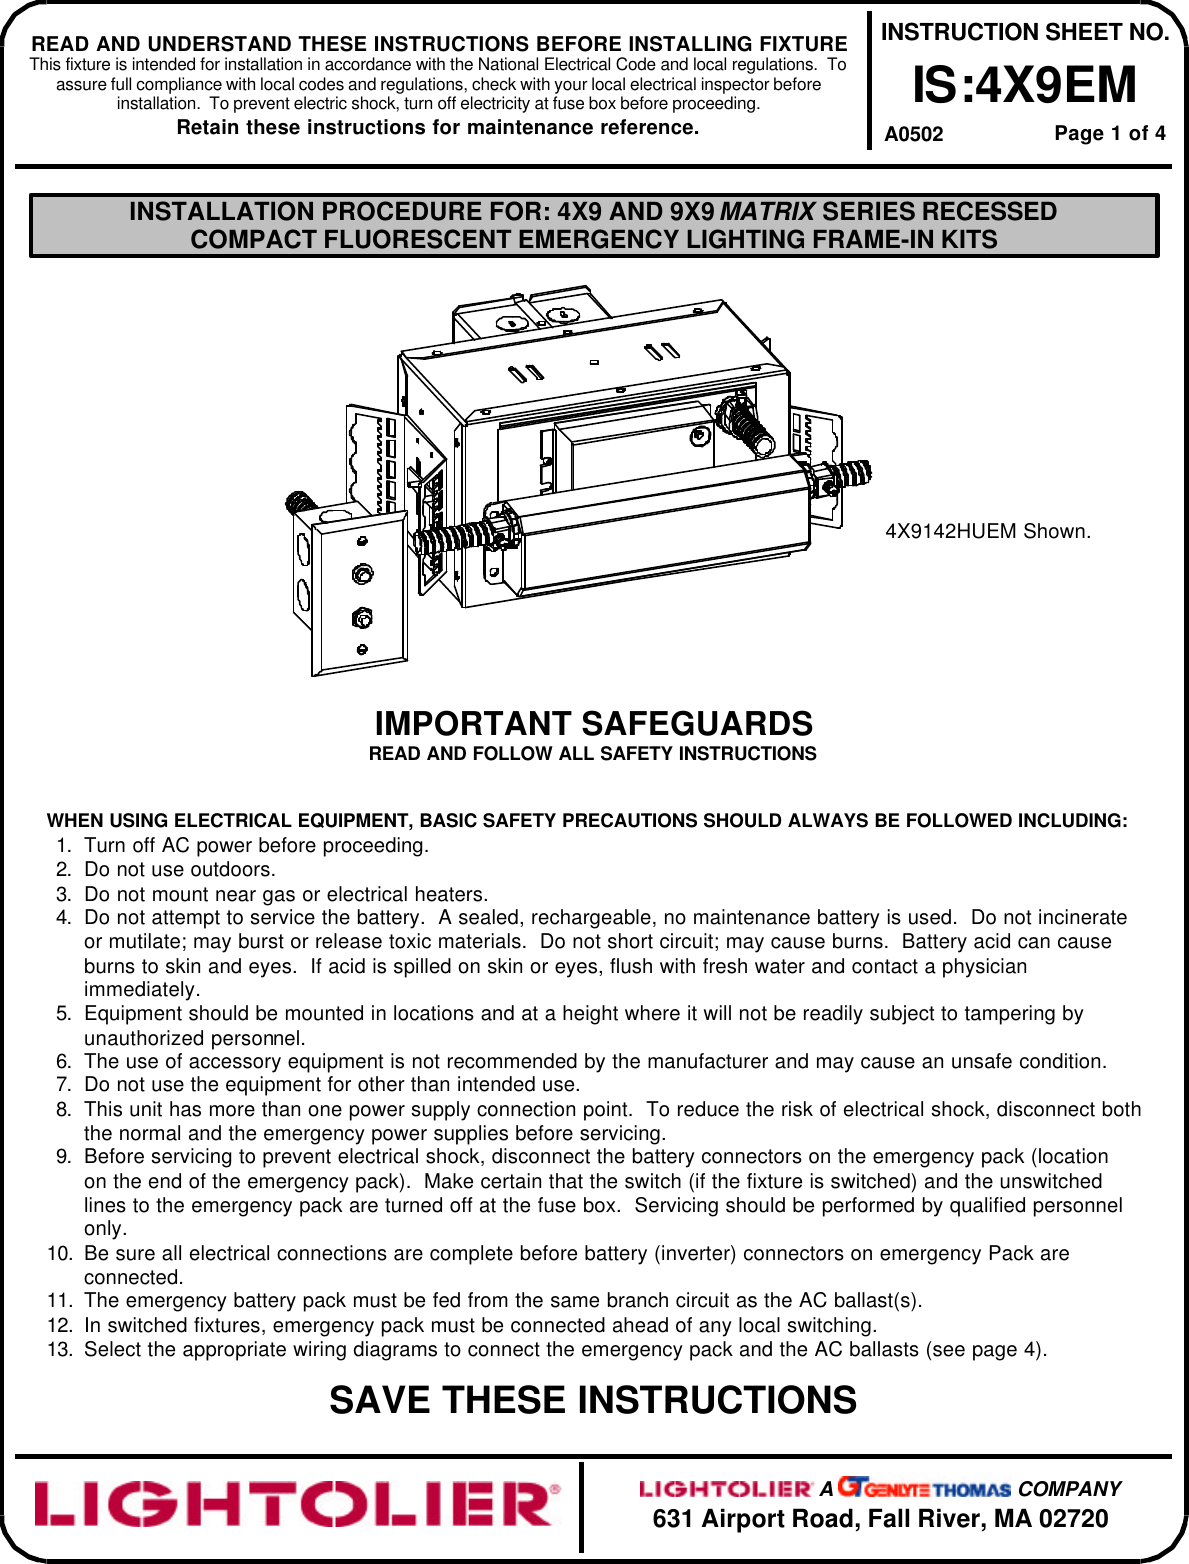 Lightolier 4X9Em Users Manual IS4X9E_PG1 on electrical box diagram, electrical power cable, 3 to 4 electrical box, electrical wiring box, electrical extension cord box, electrical fuses small to largest, electrical valve box, electrical safety signs, circuit breaker box, main electrical box, electrical panel box, electrical inductor box, electrical distribution box, wiring a 3 gang switch box, electrical power box, electrical switch box, solid state relay box, electrical chassis control module, electrical wiring details, electrical box cut out,